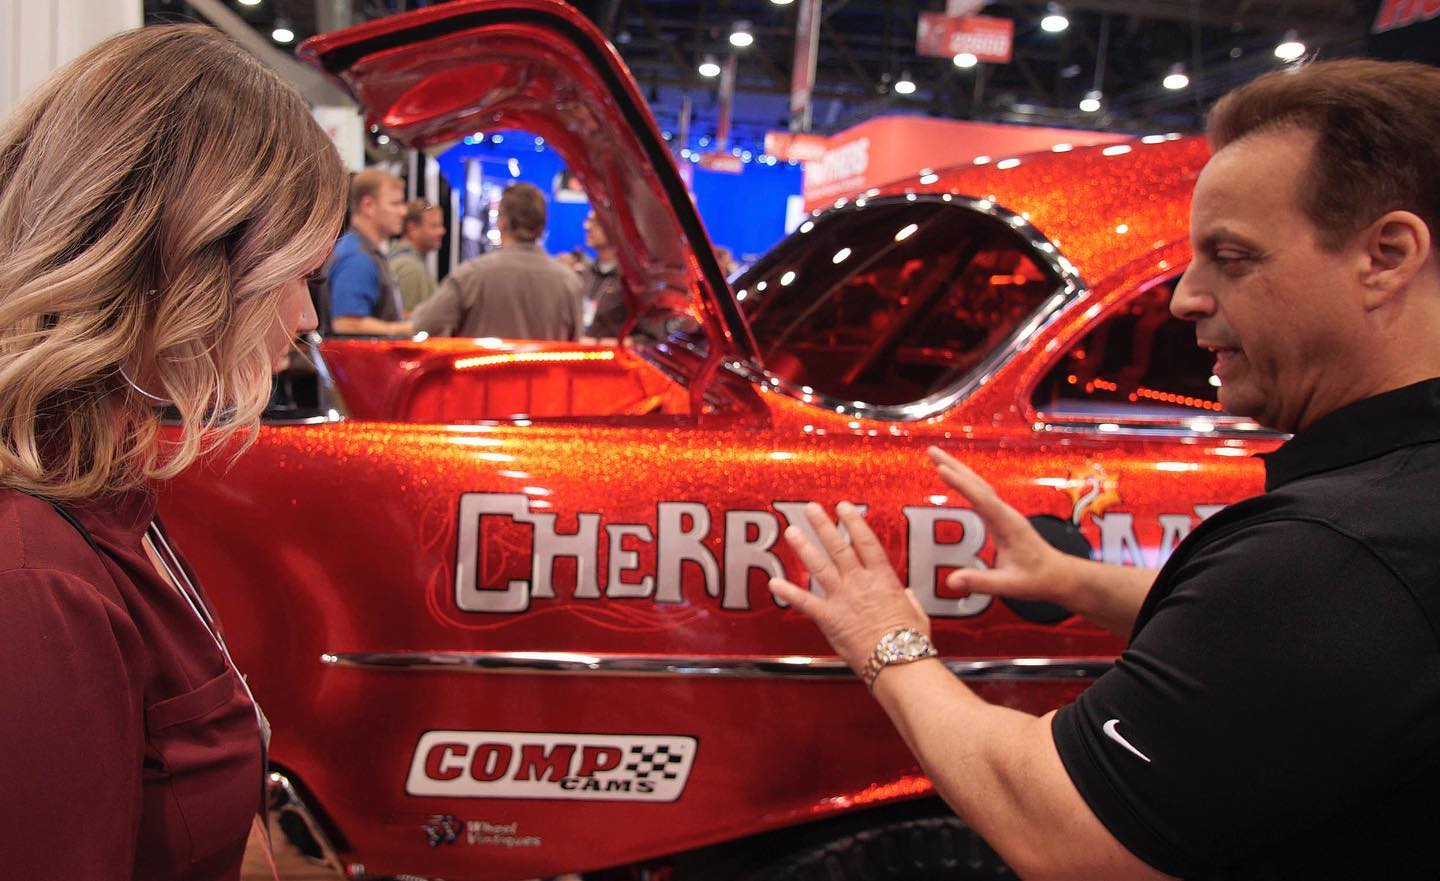 Members of the Tint World team check out automotive industry innovations at SEMA